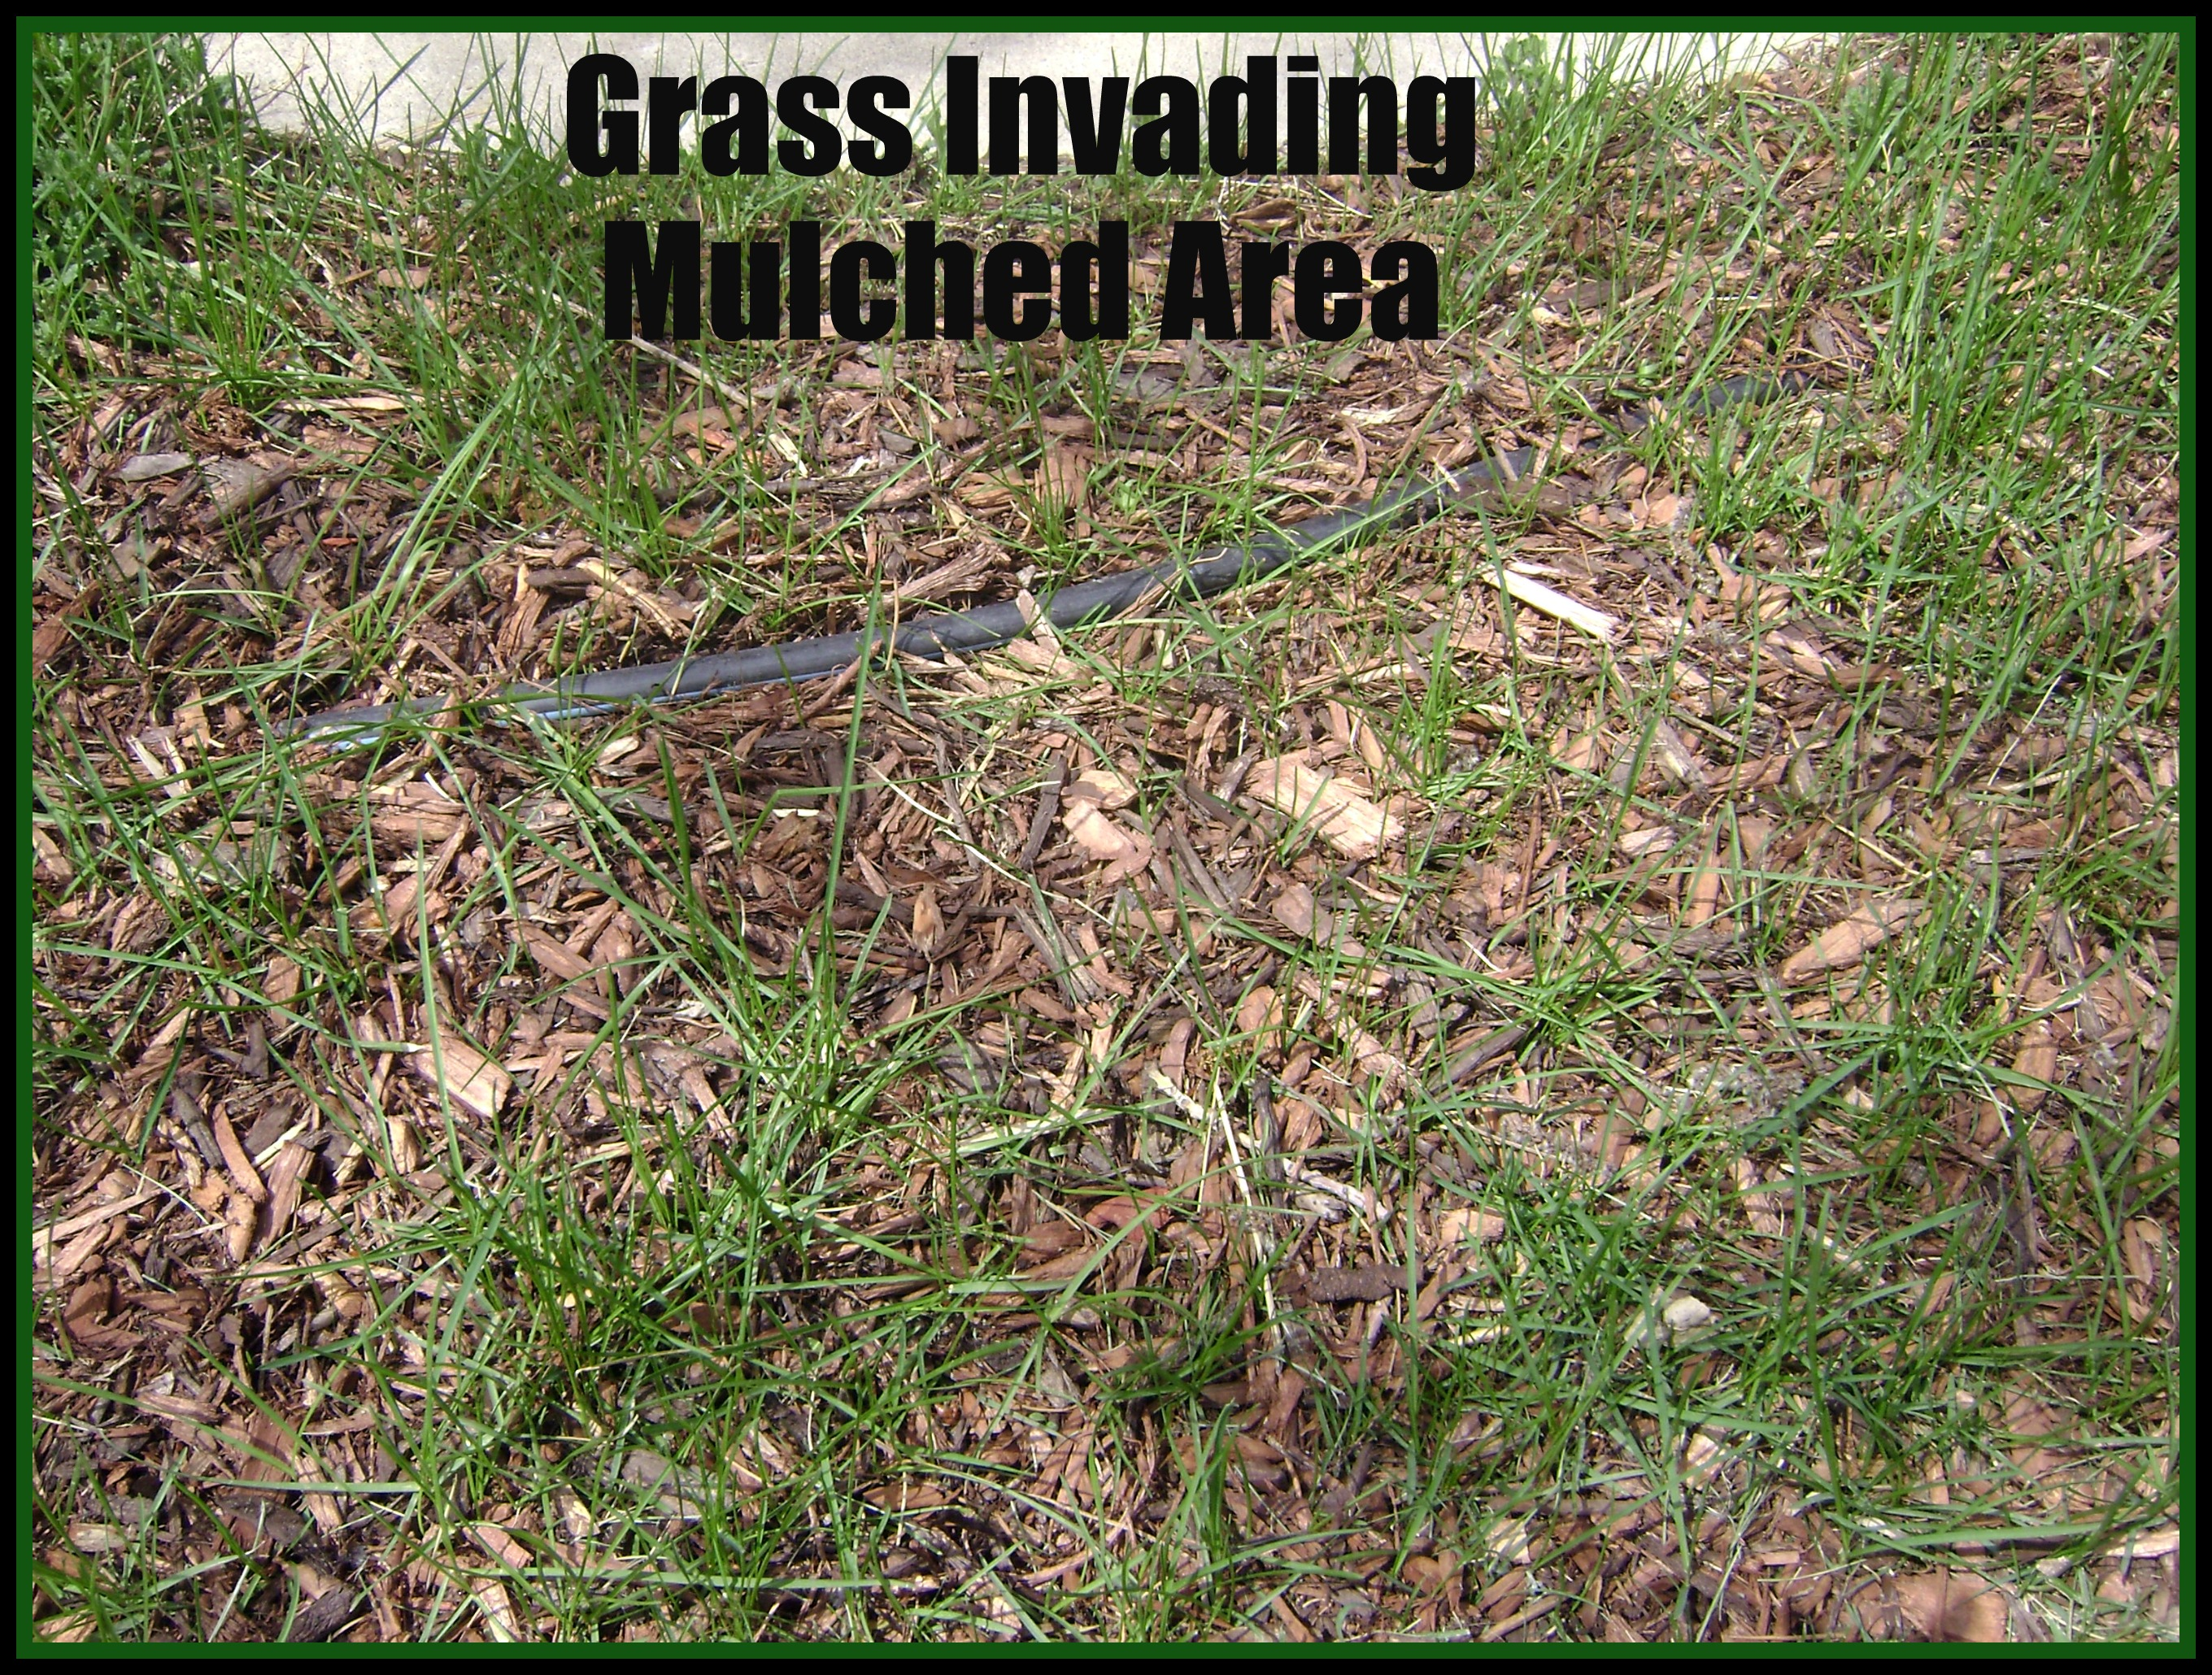 Kill weeds in flower beds - Grass Invading Mulched Area